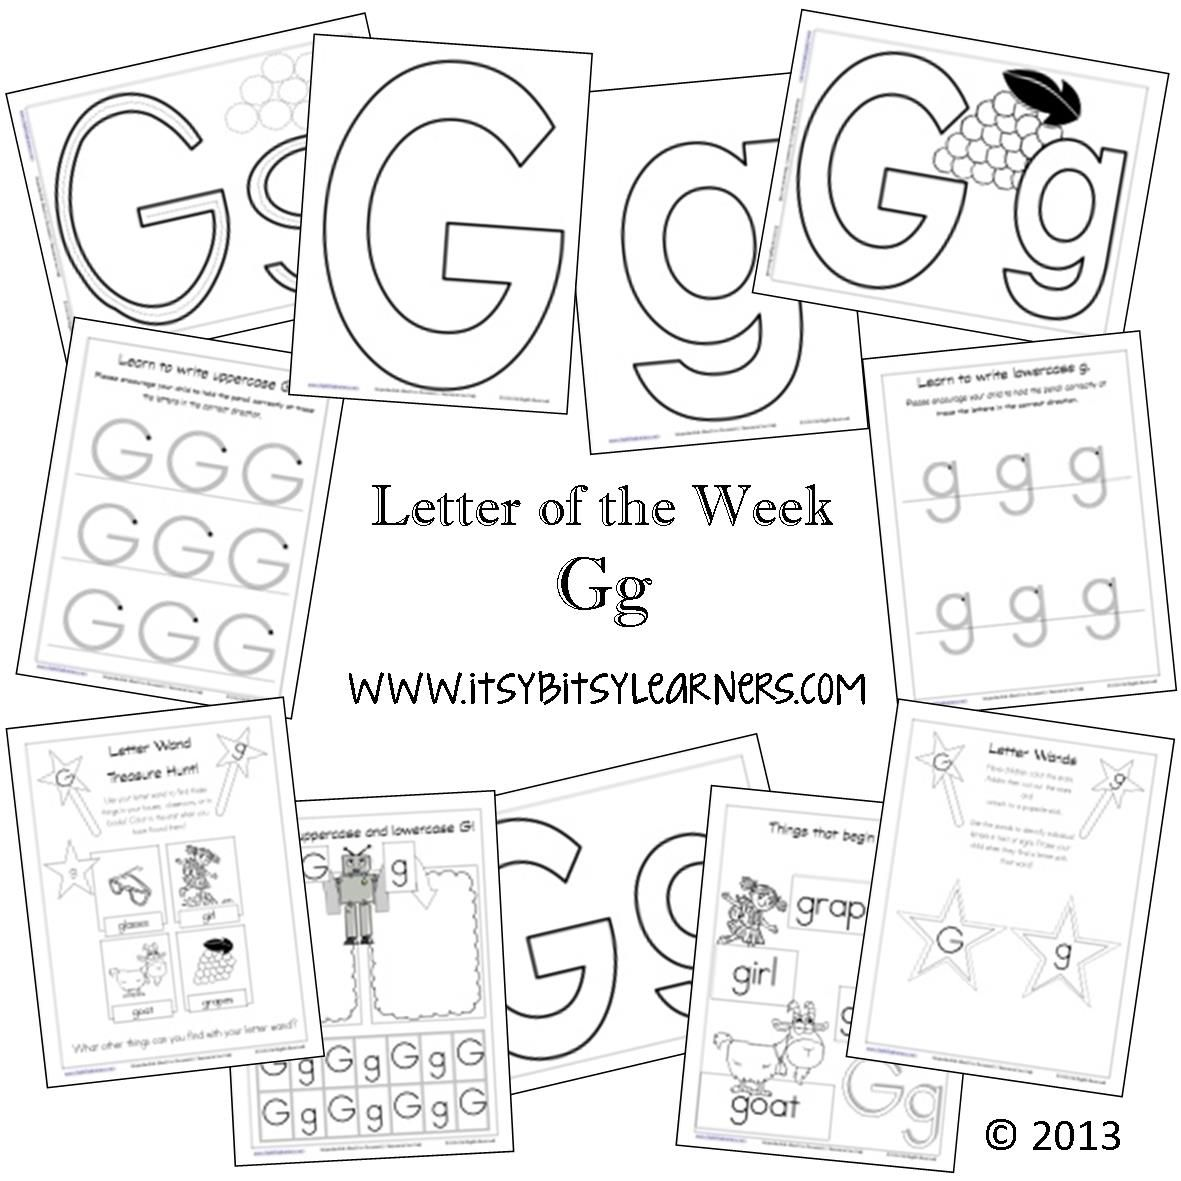 Available Free At Itsybitsylearners Abcs 123s